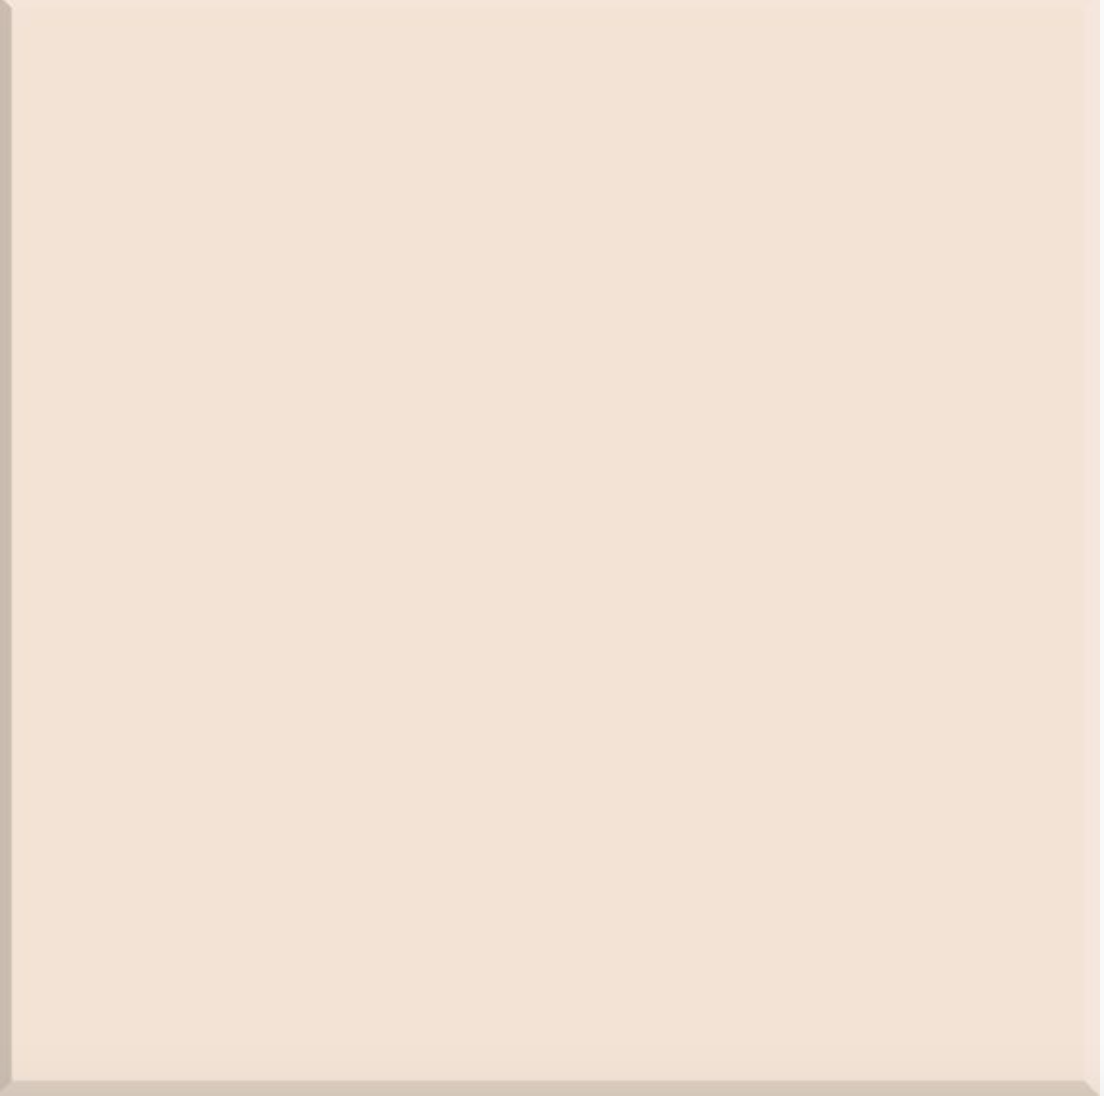 'Peach Sorbet' gloss tile from the Prismatics range at Johnson tiles. Suitable for interior walls only.